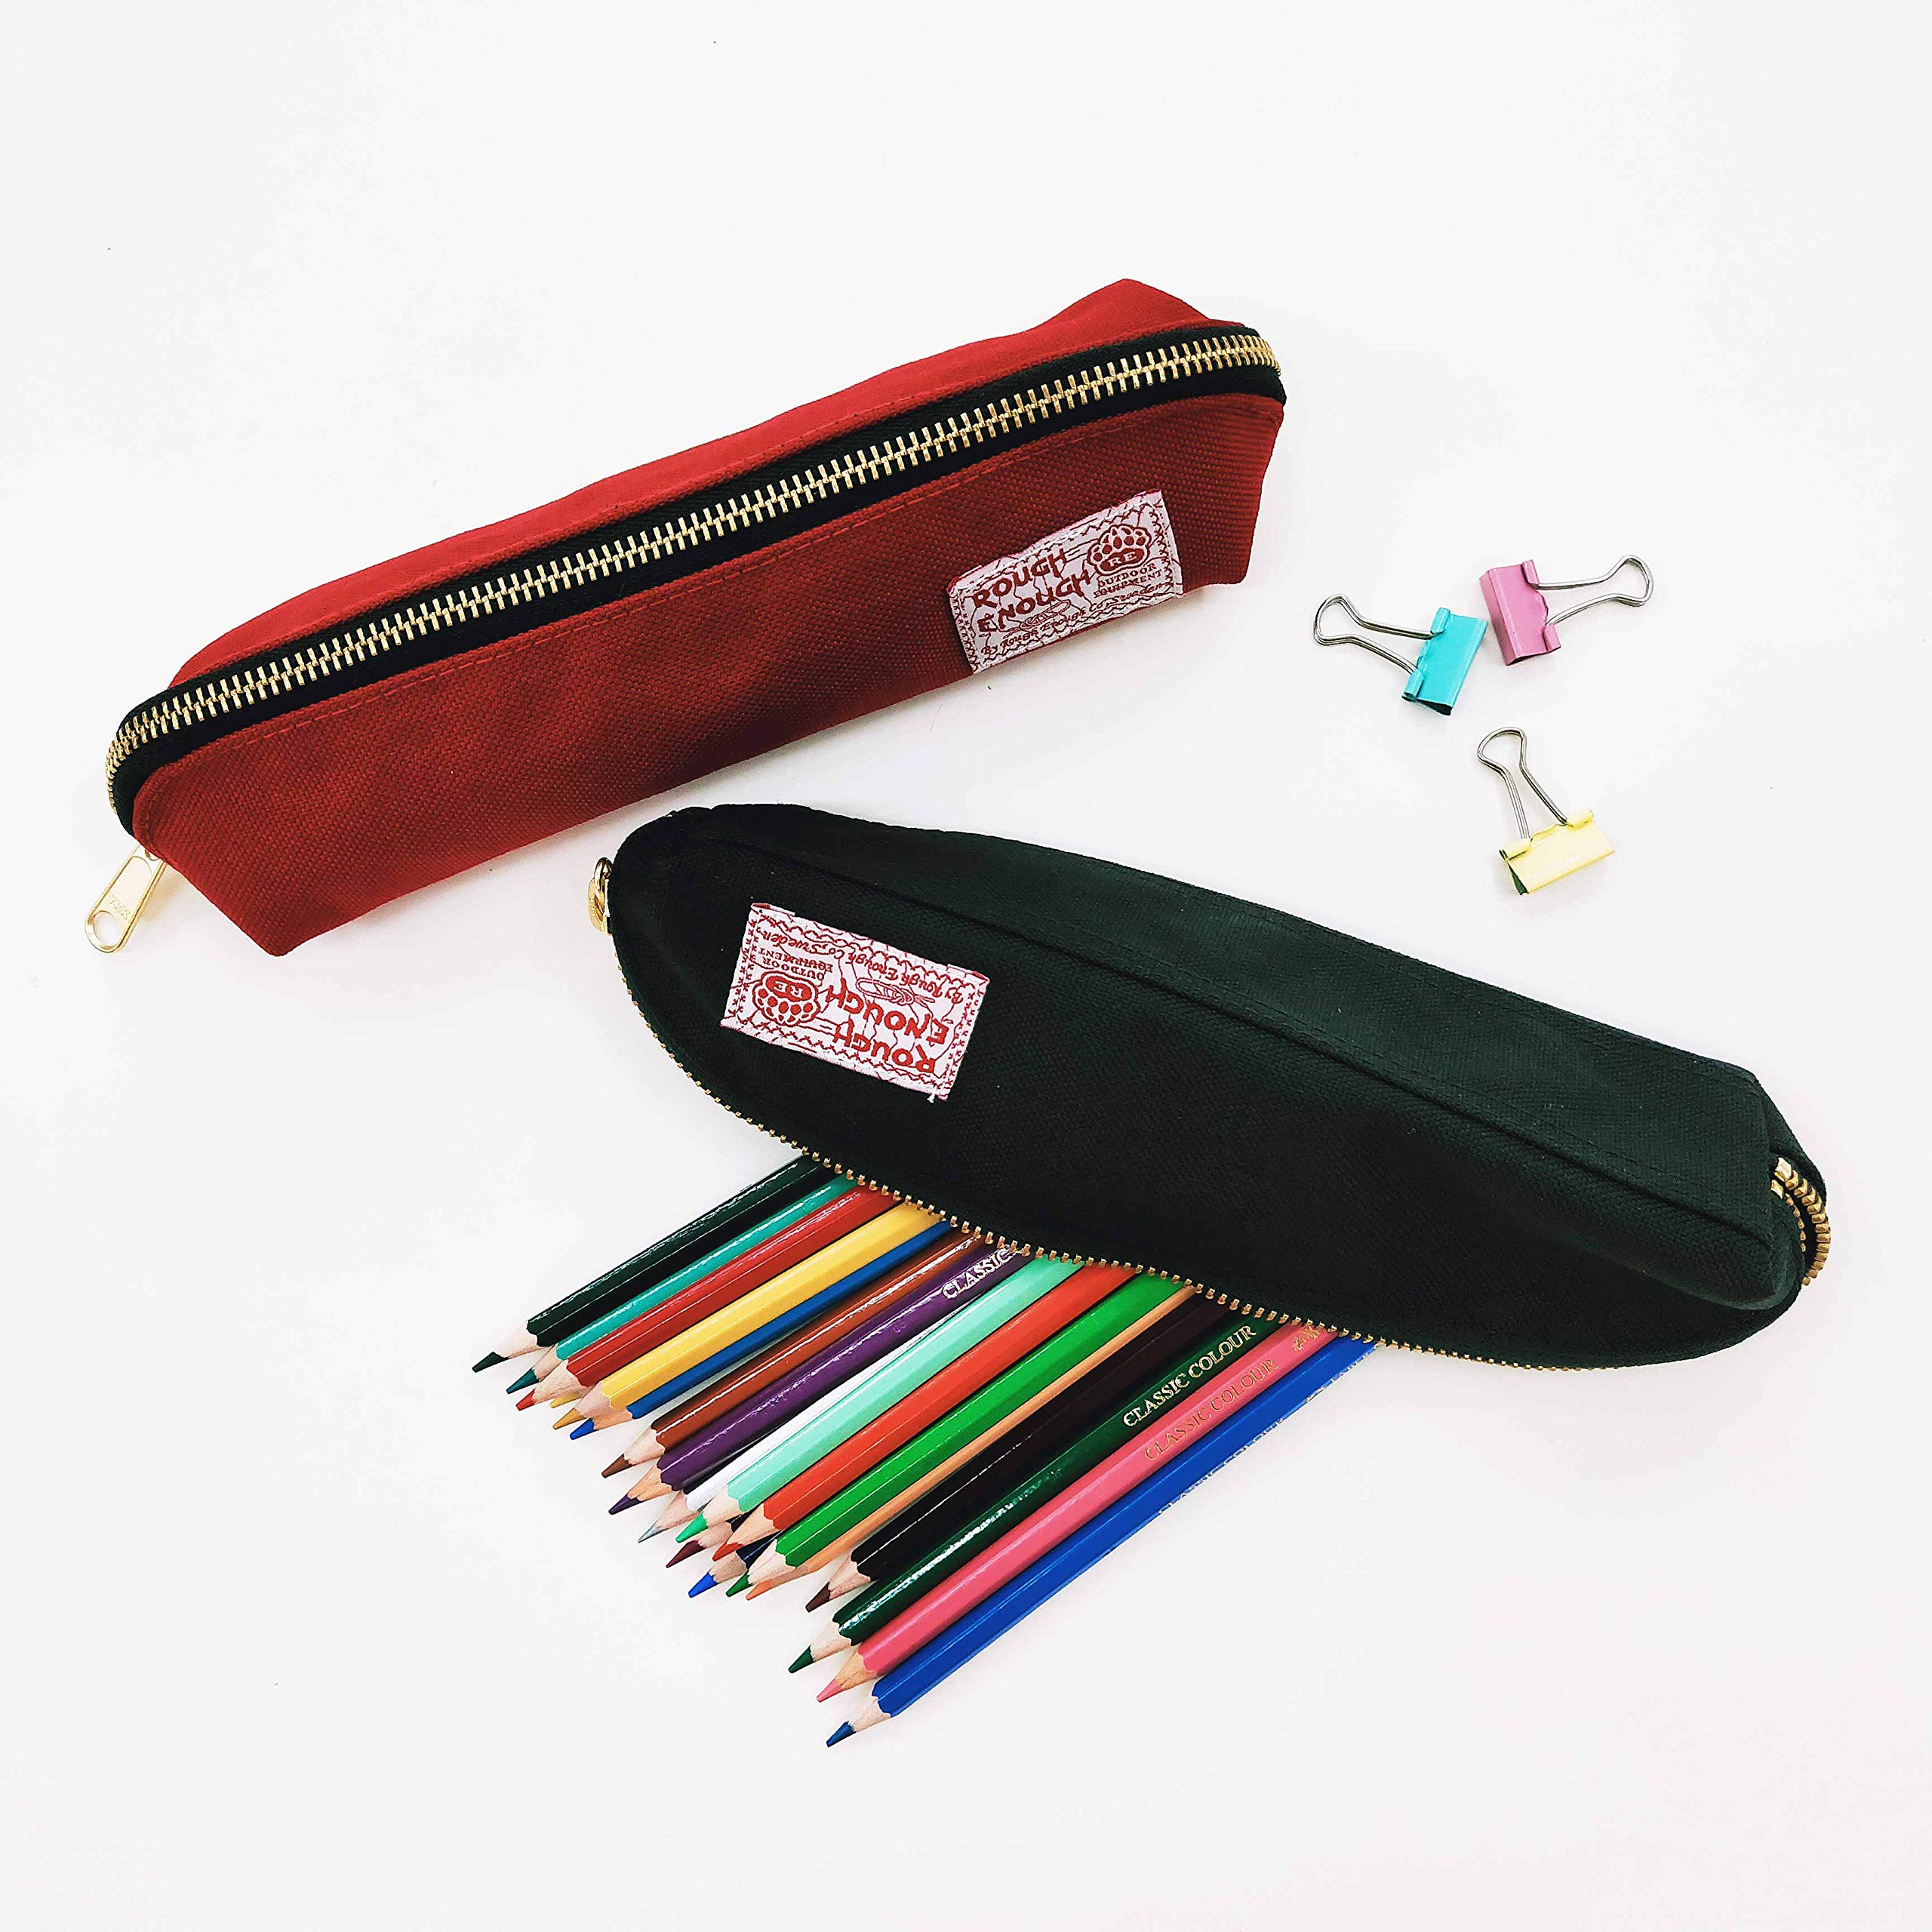 Rough Enough Multi-purpose CORDURA Polyester Long Slim Classic Portable Pencil Case Pouch Holder Organizer with YKK Gold Zipper for Stationary Cosmetics Accessories Kids Boys Students at Schools Black by ROUGH ENOUGH (Image #8)